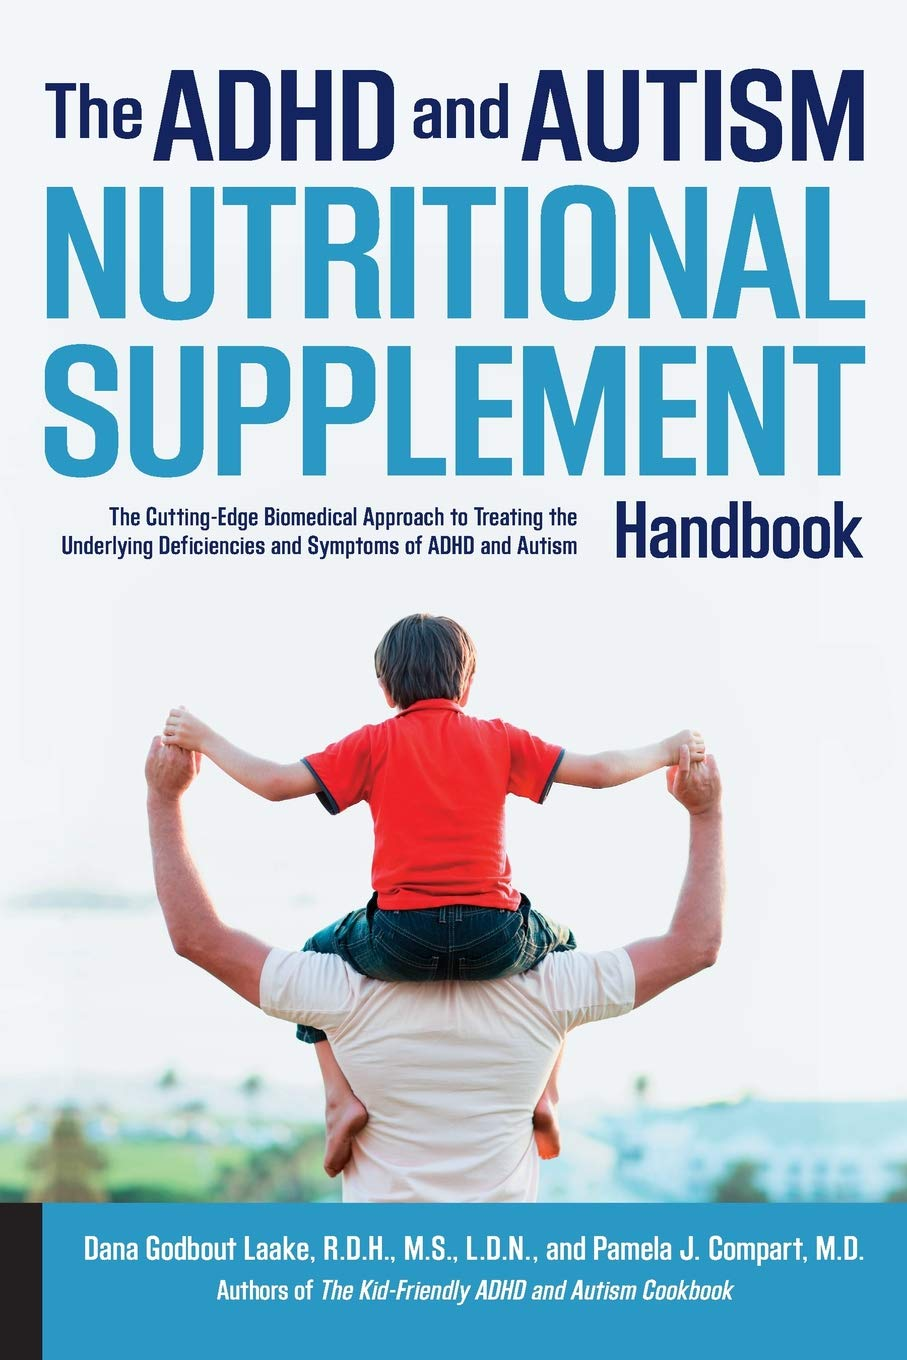 Download The ADHD And Autism Nutritional Supplement Handbook: The Cutting-Edge Biomedical Approach To Treating The Underlying Defic... 